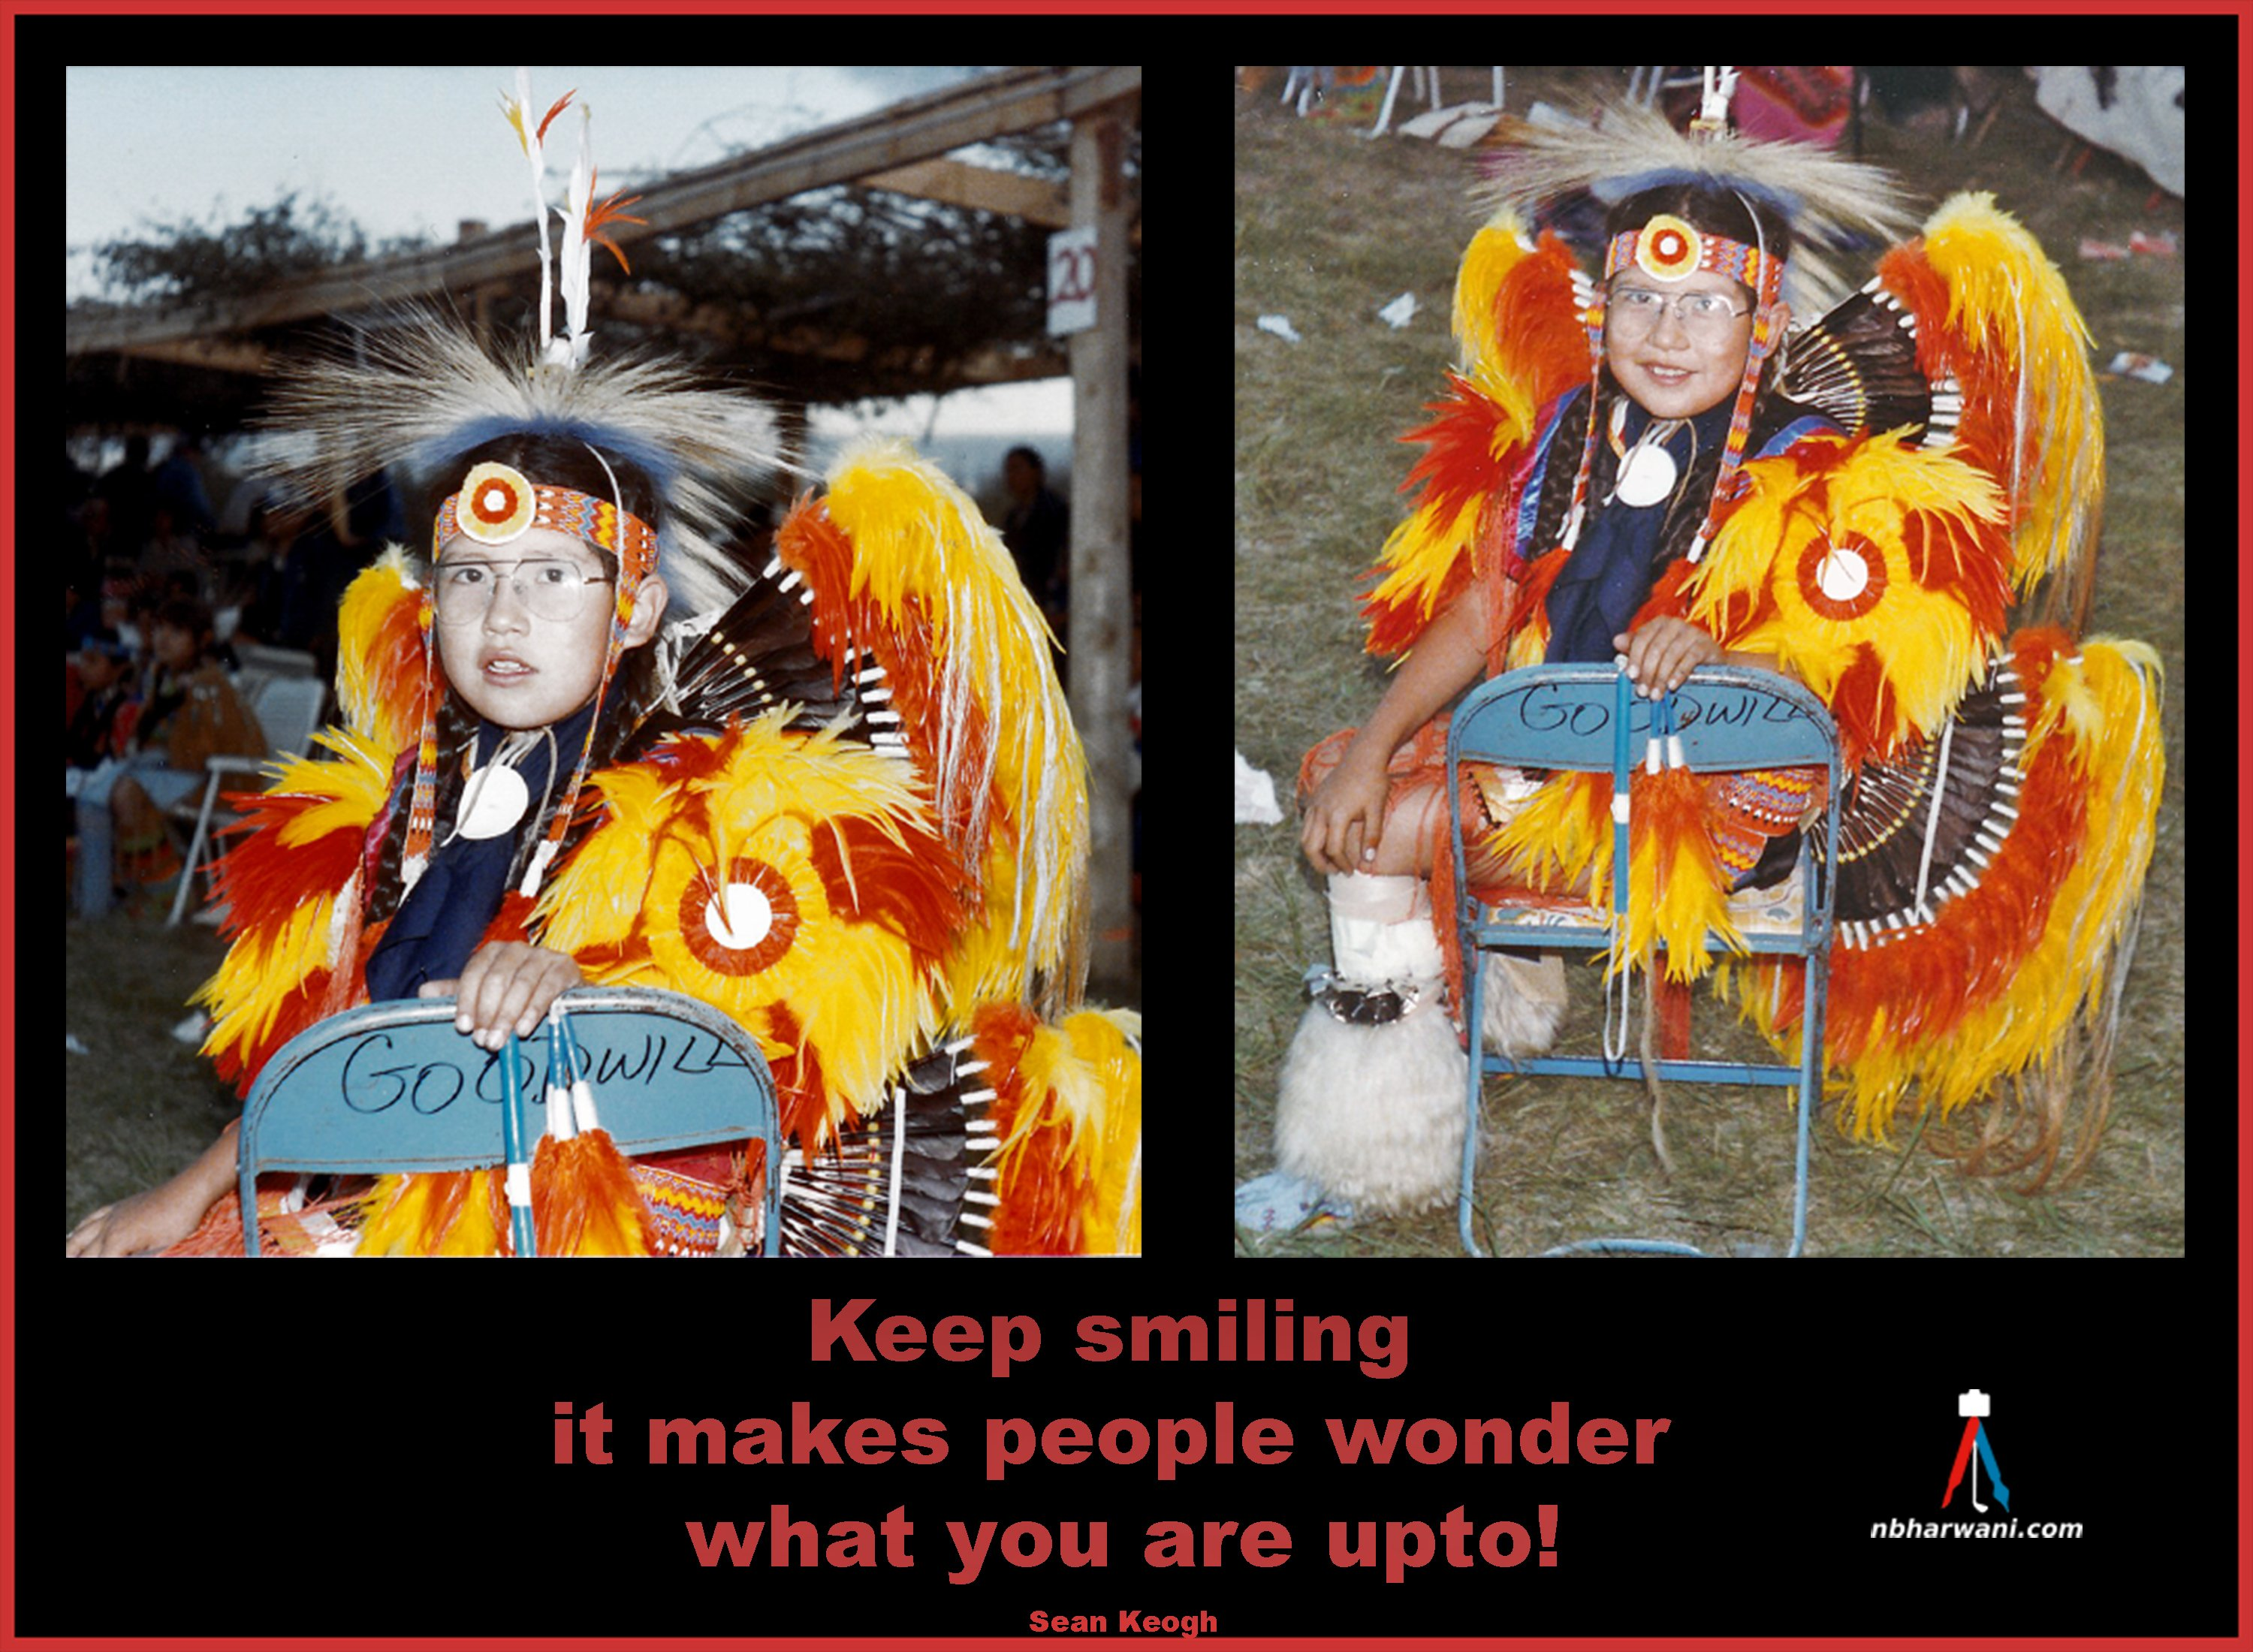 Keep smiling, it makes people wonder what you are upto! (Dr. Noorali Bharwani)